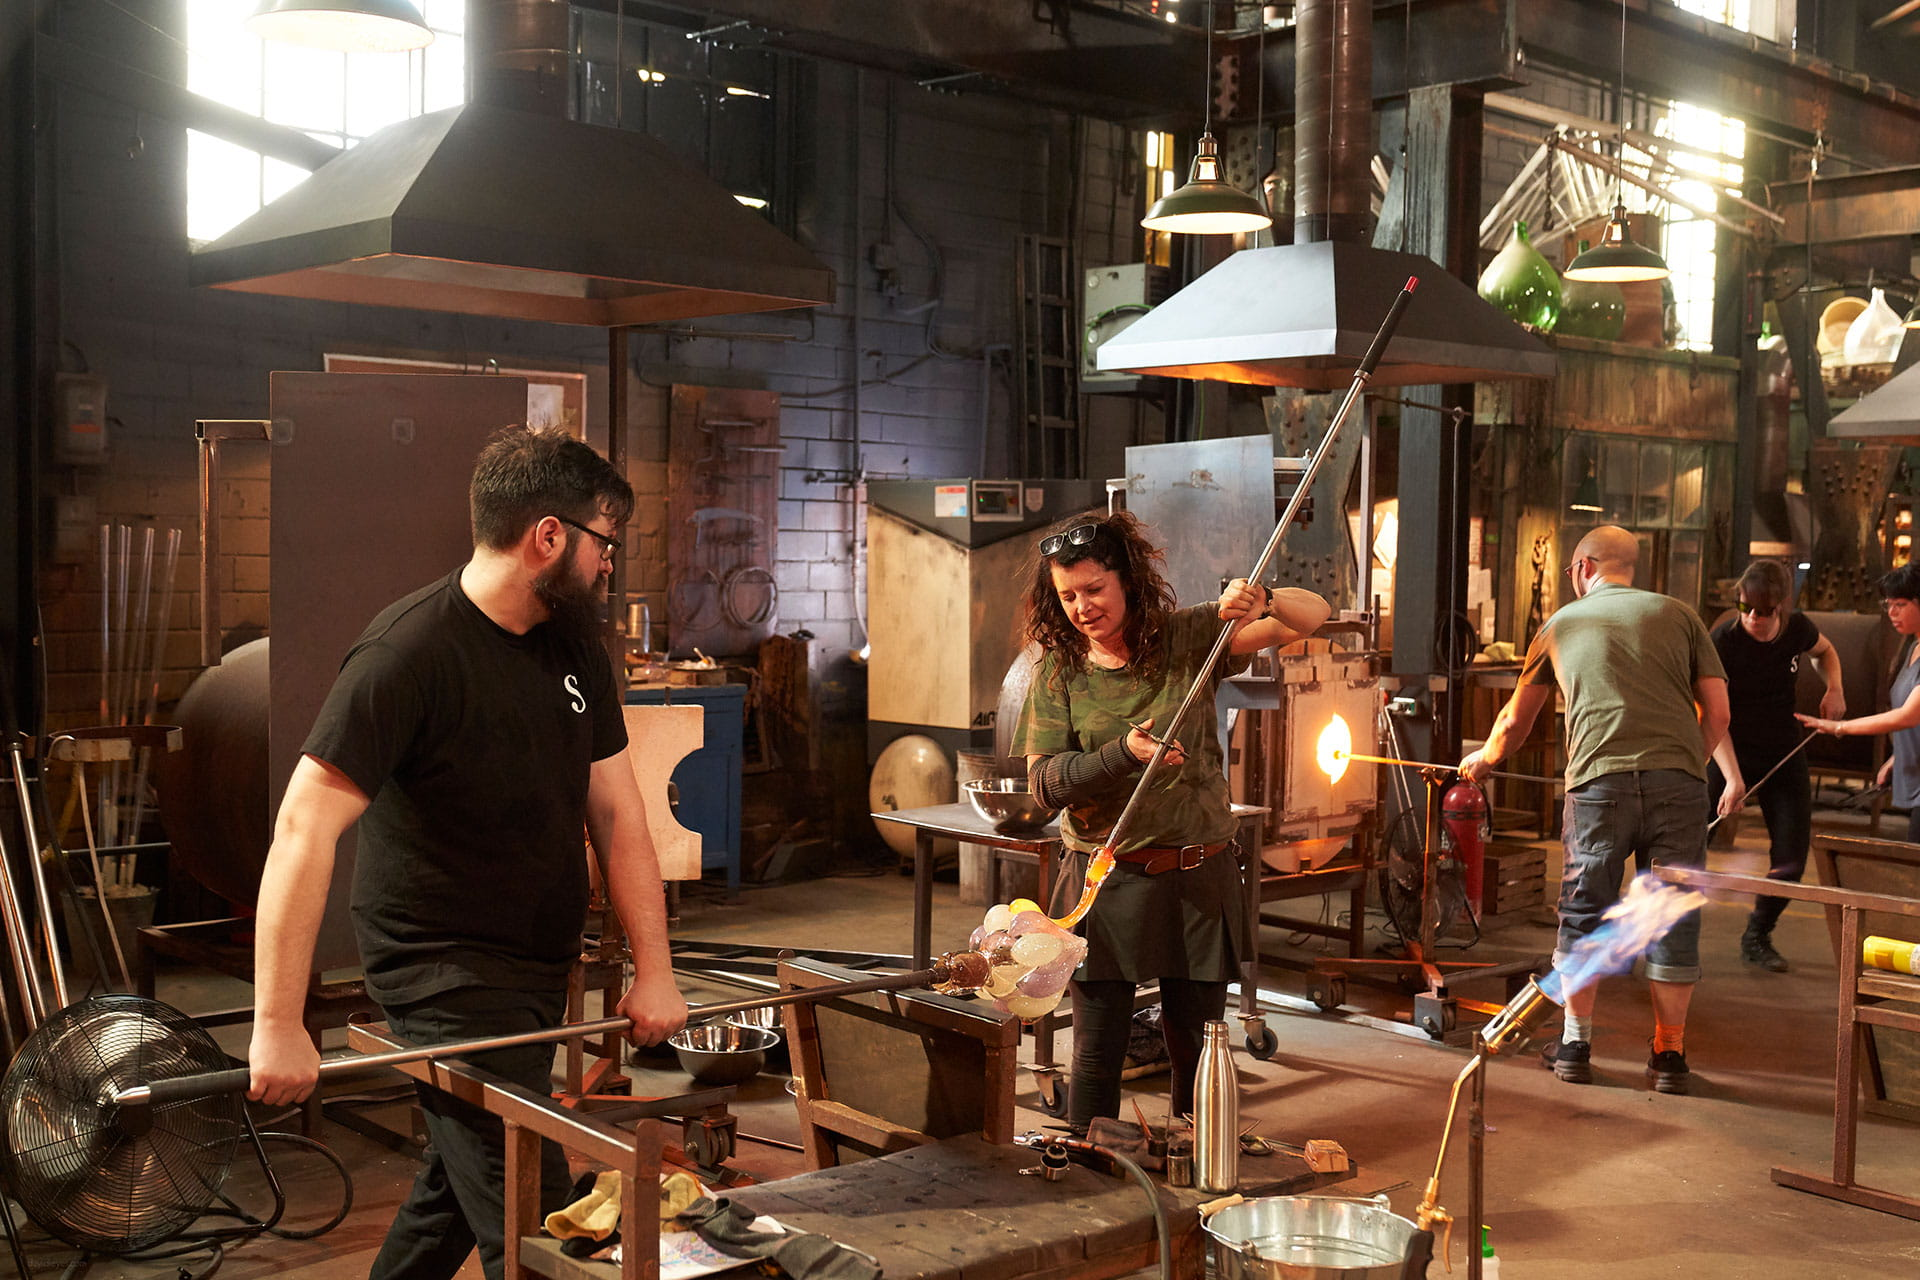 Glassblowers working with glass on the set of Netflix's Blown Away